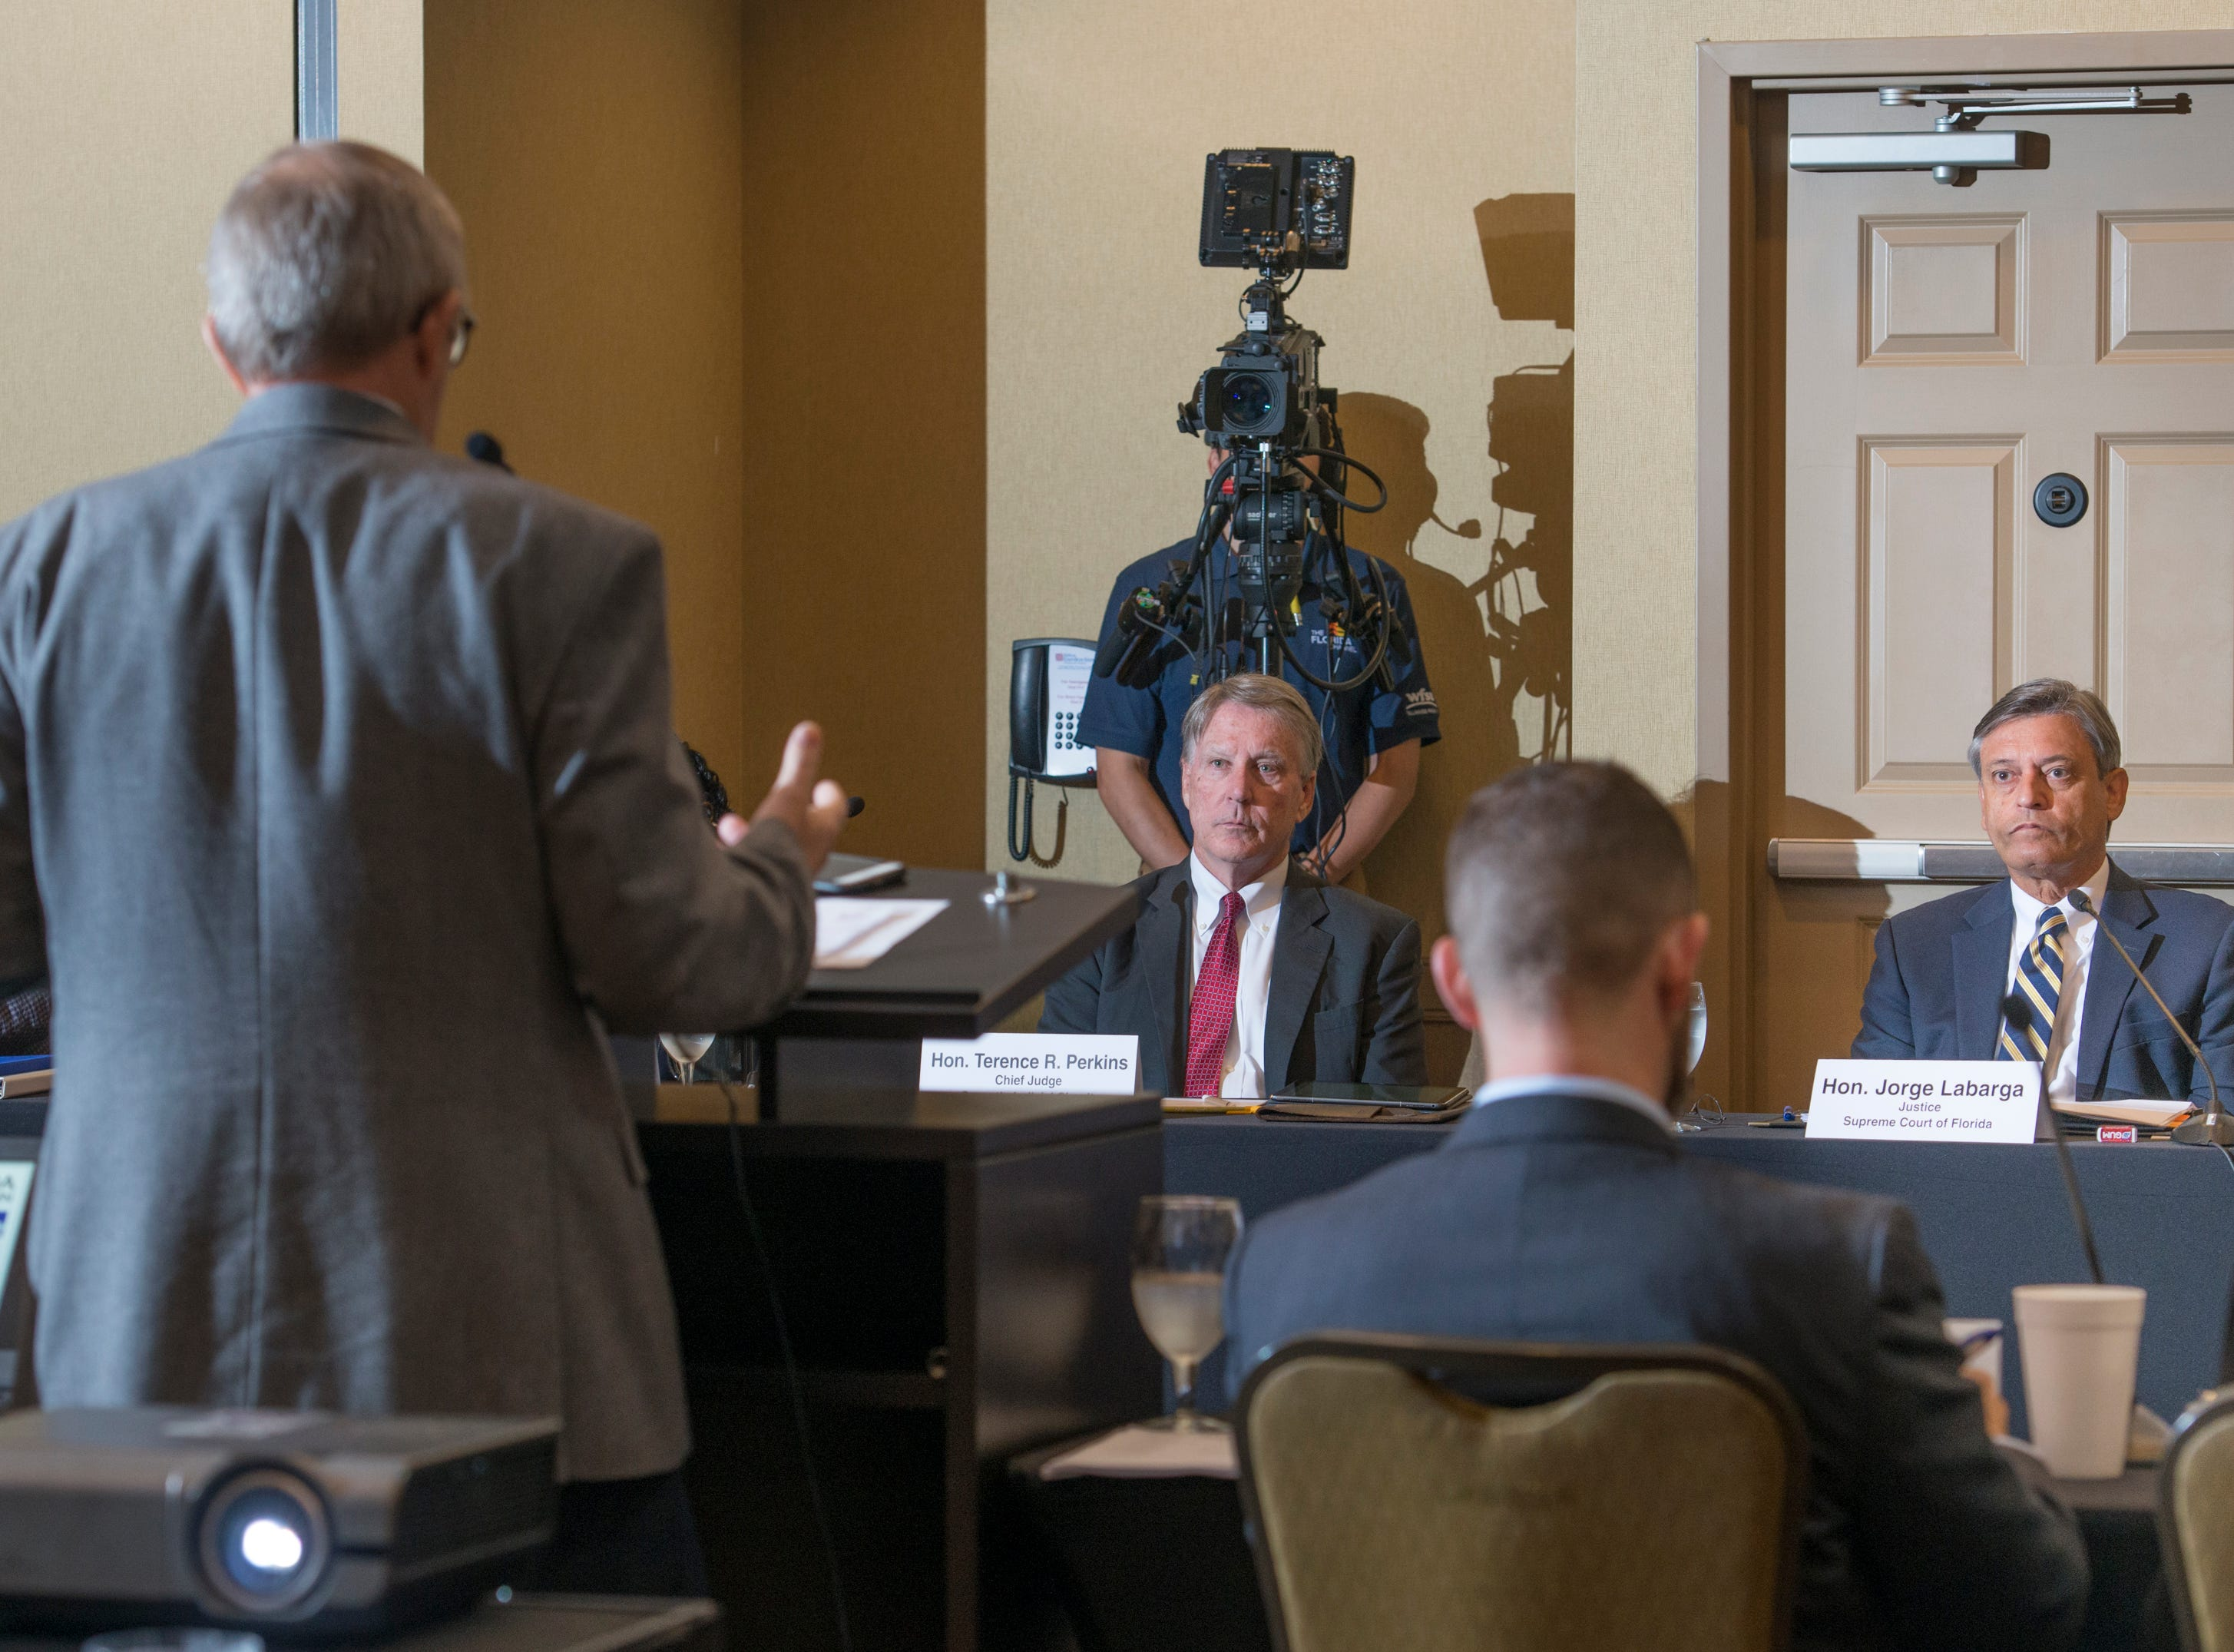 Seventh Judicial Circuit chief judge Terence Perkins, left, and Supreme Court of Florida justice Jorge Labarga listen to Florida Veterans Foundation president Dennis Baker speak as the Florida Commission on Access to Civil Justice discusses veterans issues at the Hilton Garden Inn in Pensacola on Friday, August 10, 2018.